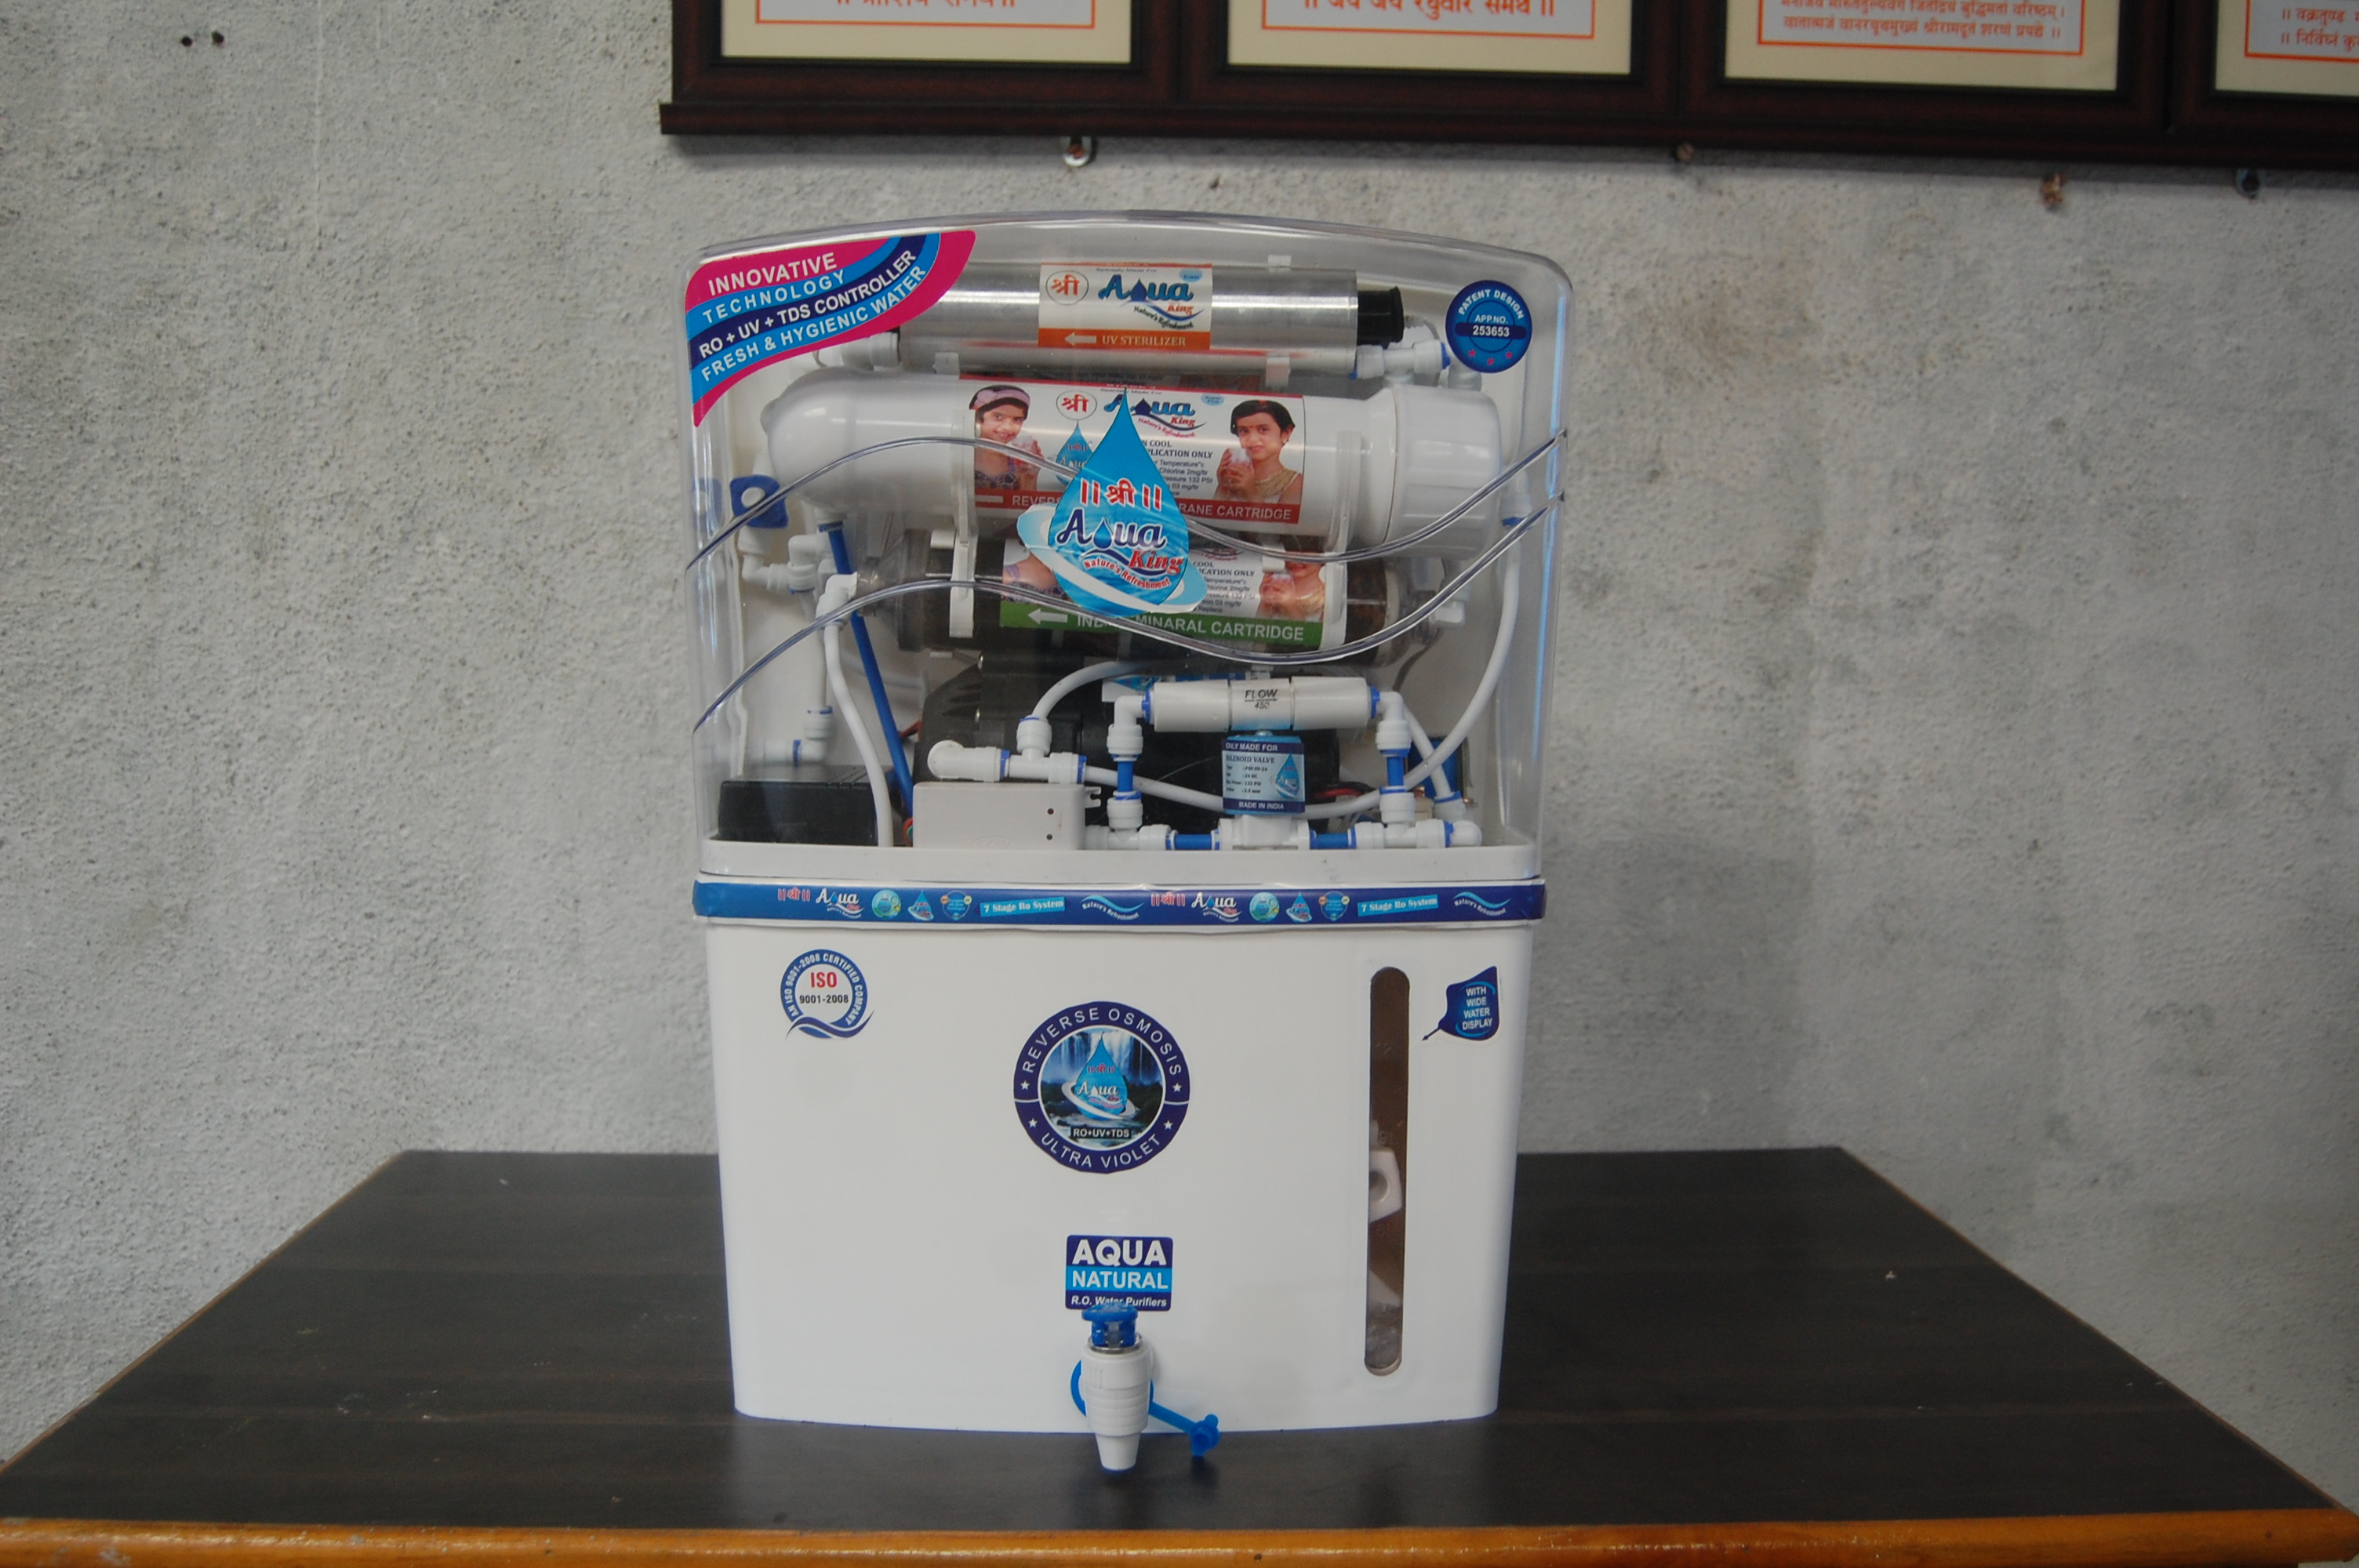 we provide best water solution and environment services